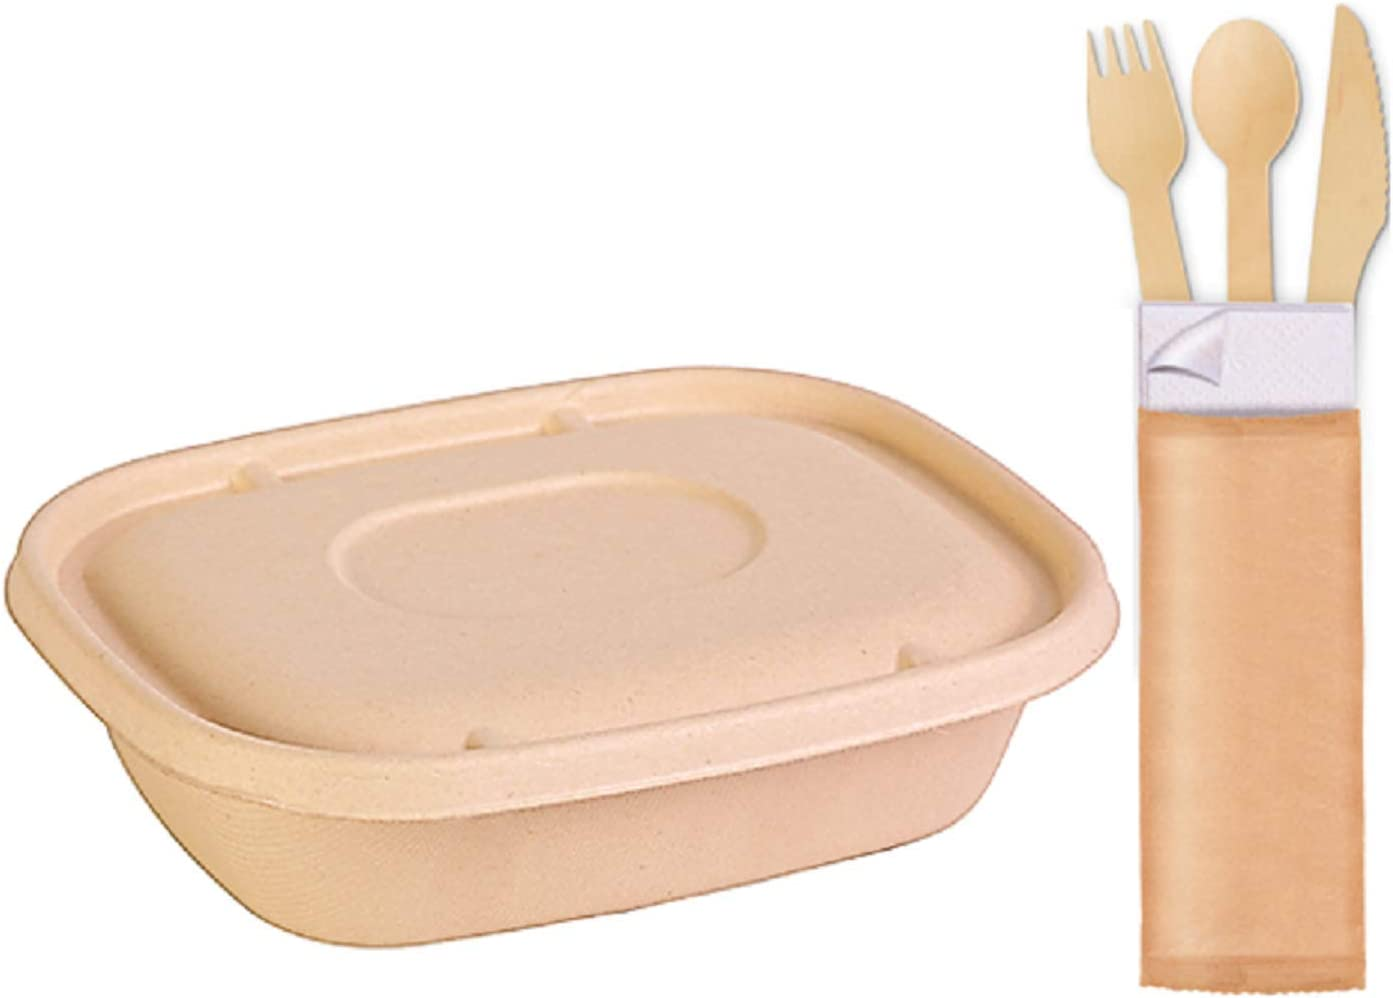 50 Pcs Takeout set | 25 Disposable sugarcane fibers containers with lid + 25 Wooden Cutlery packets individually packed.100% Compostable Wood paper and bagasse Eco Friendly Alternative to plastic